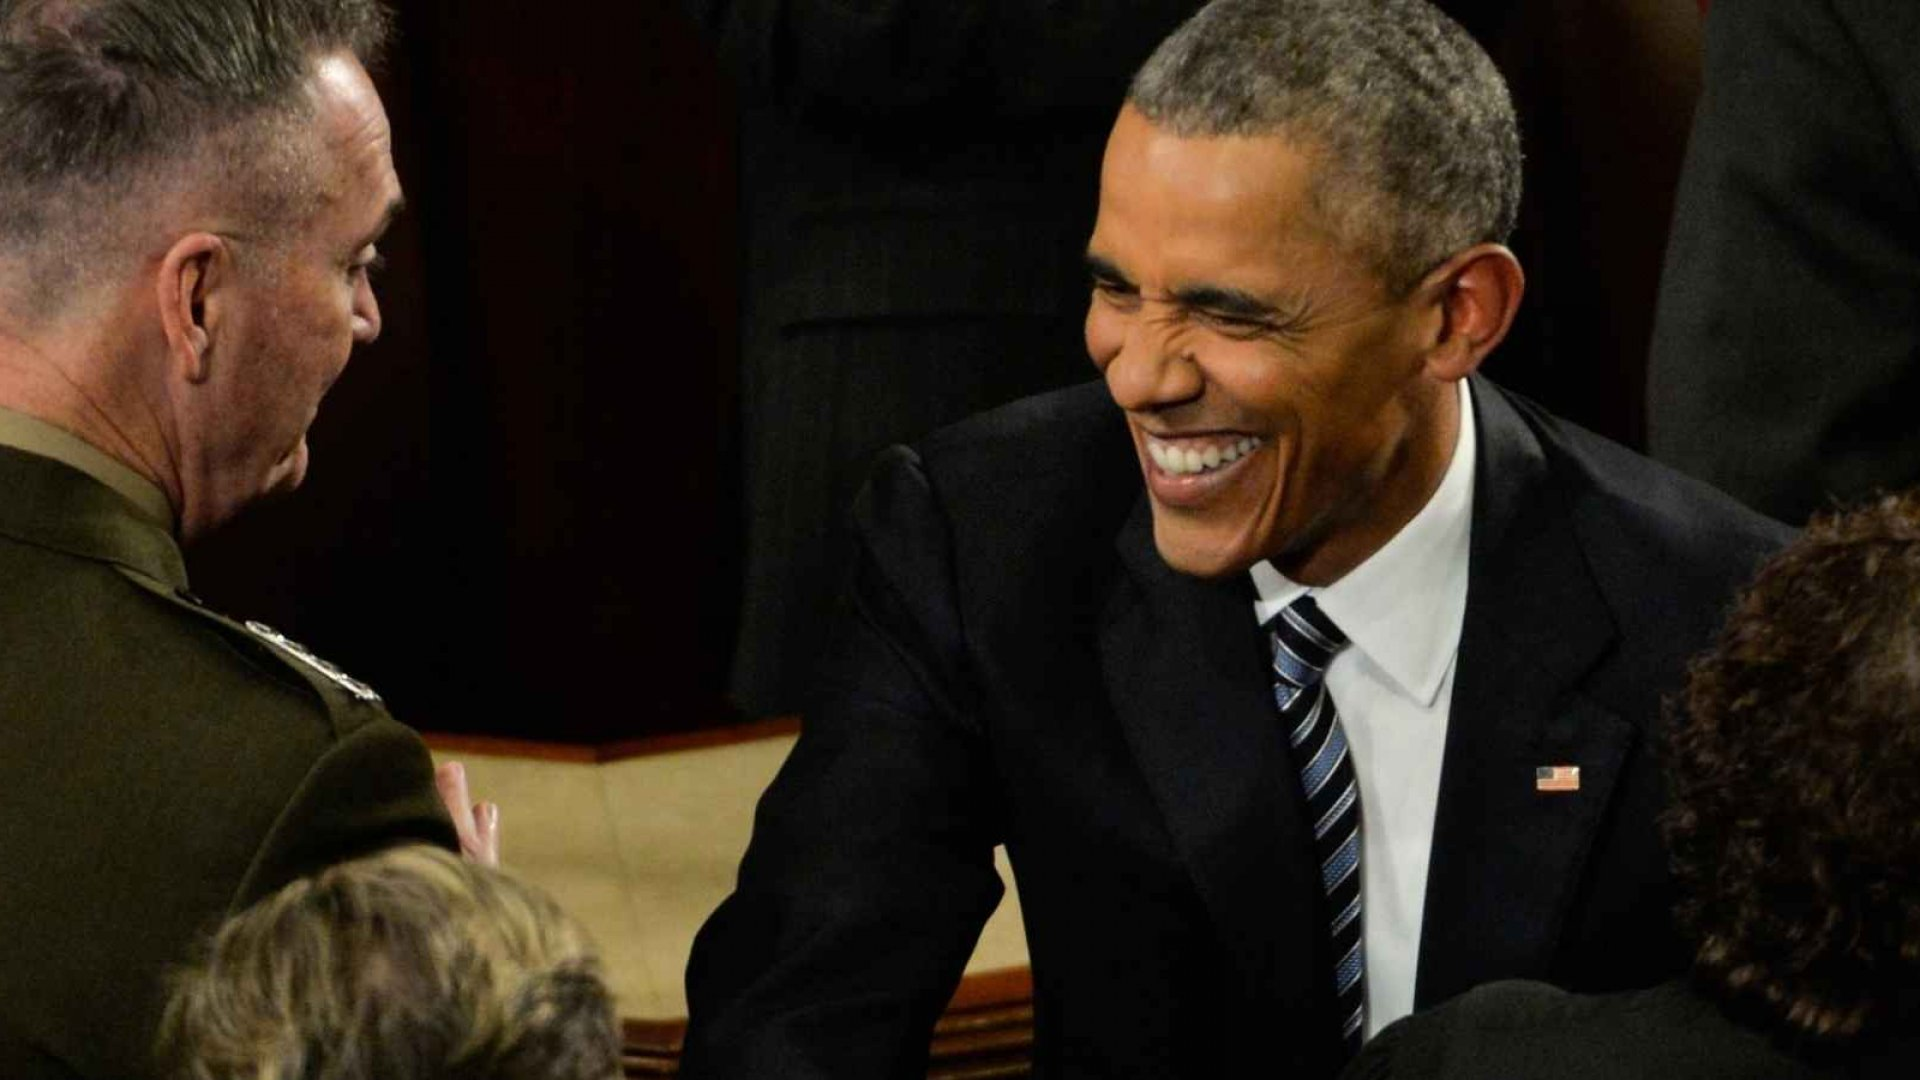 5 Things CEOs Can Learn From Obama's Advice to His Younger Self